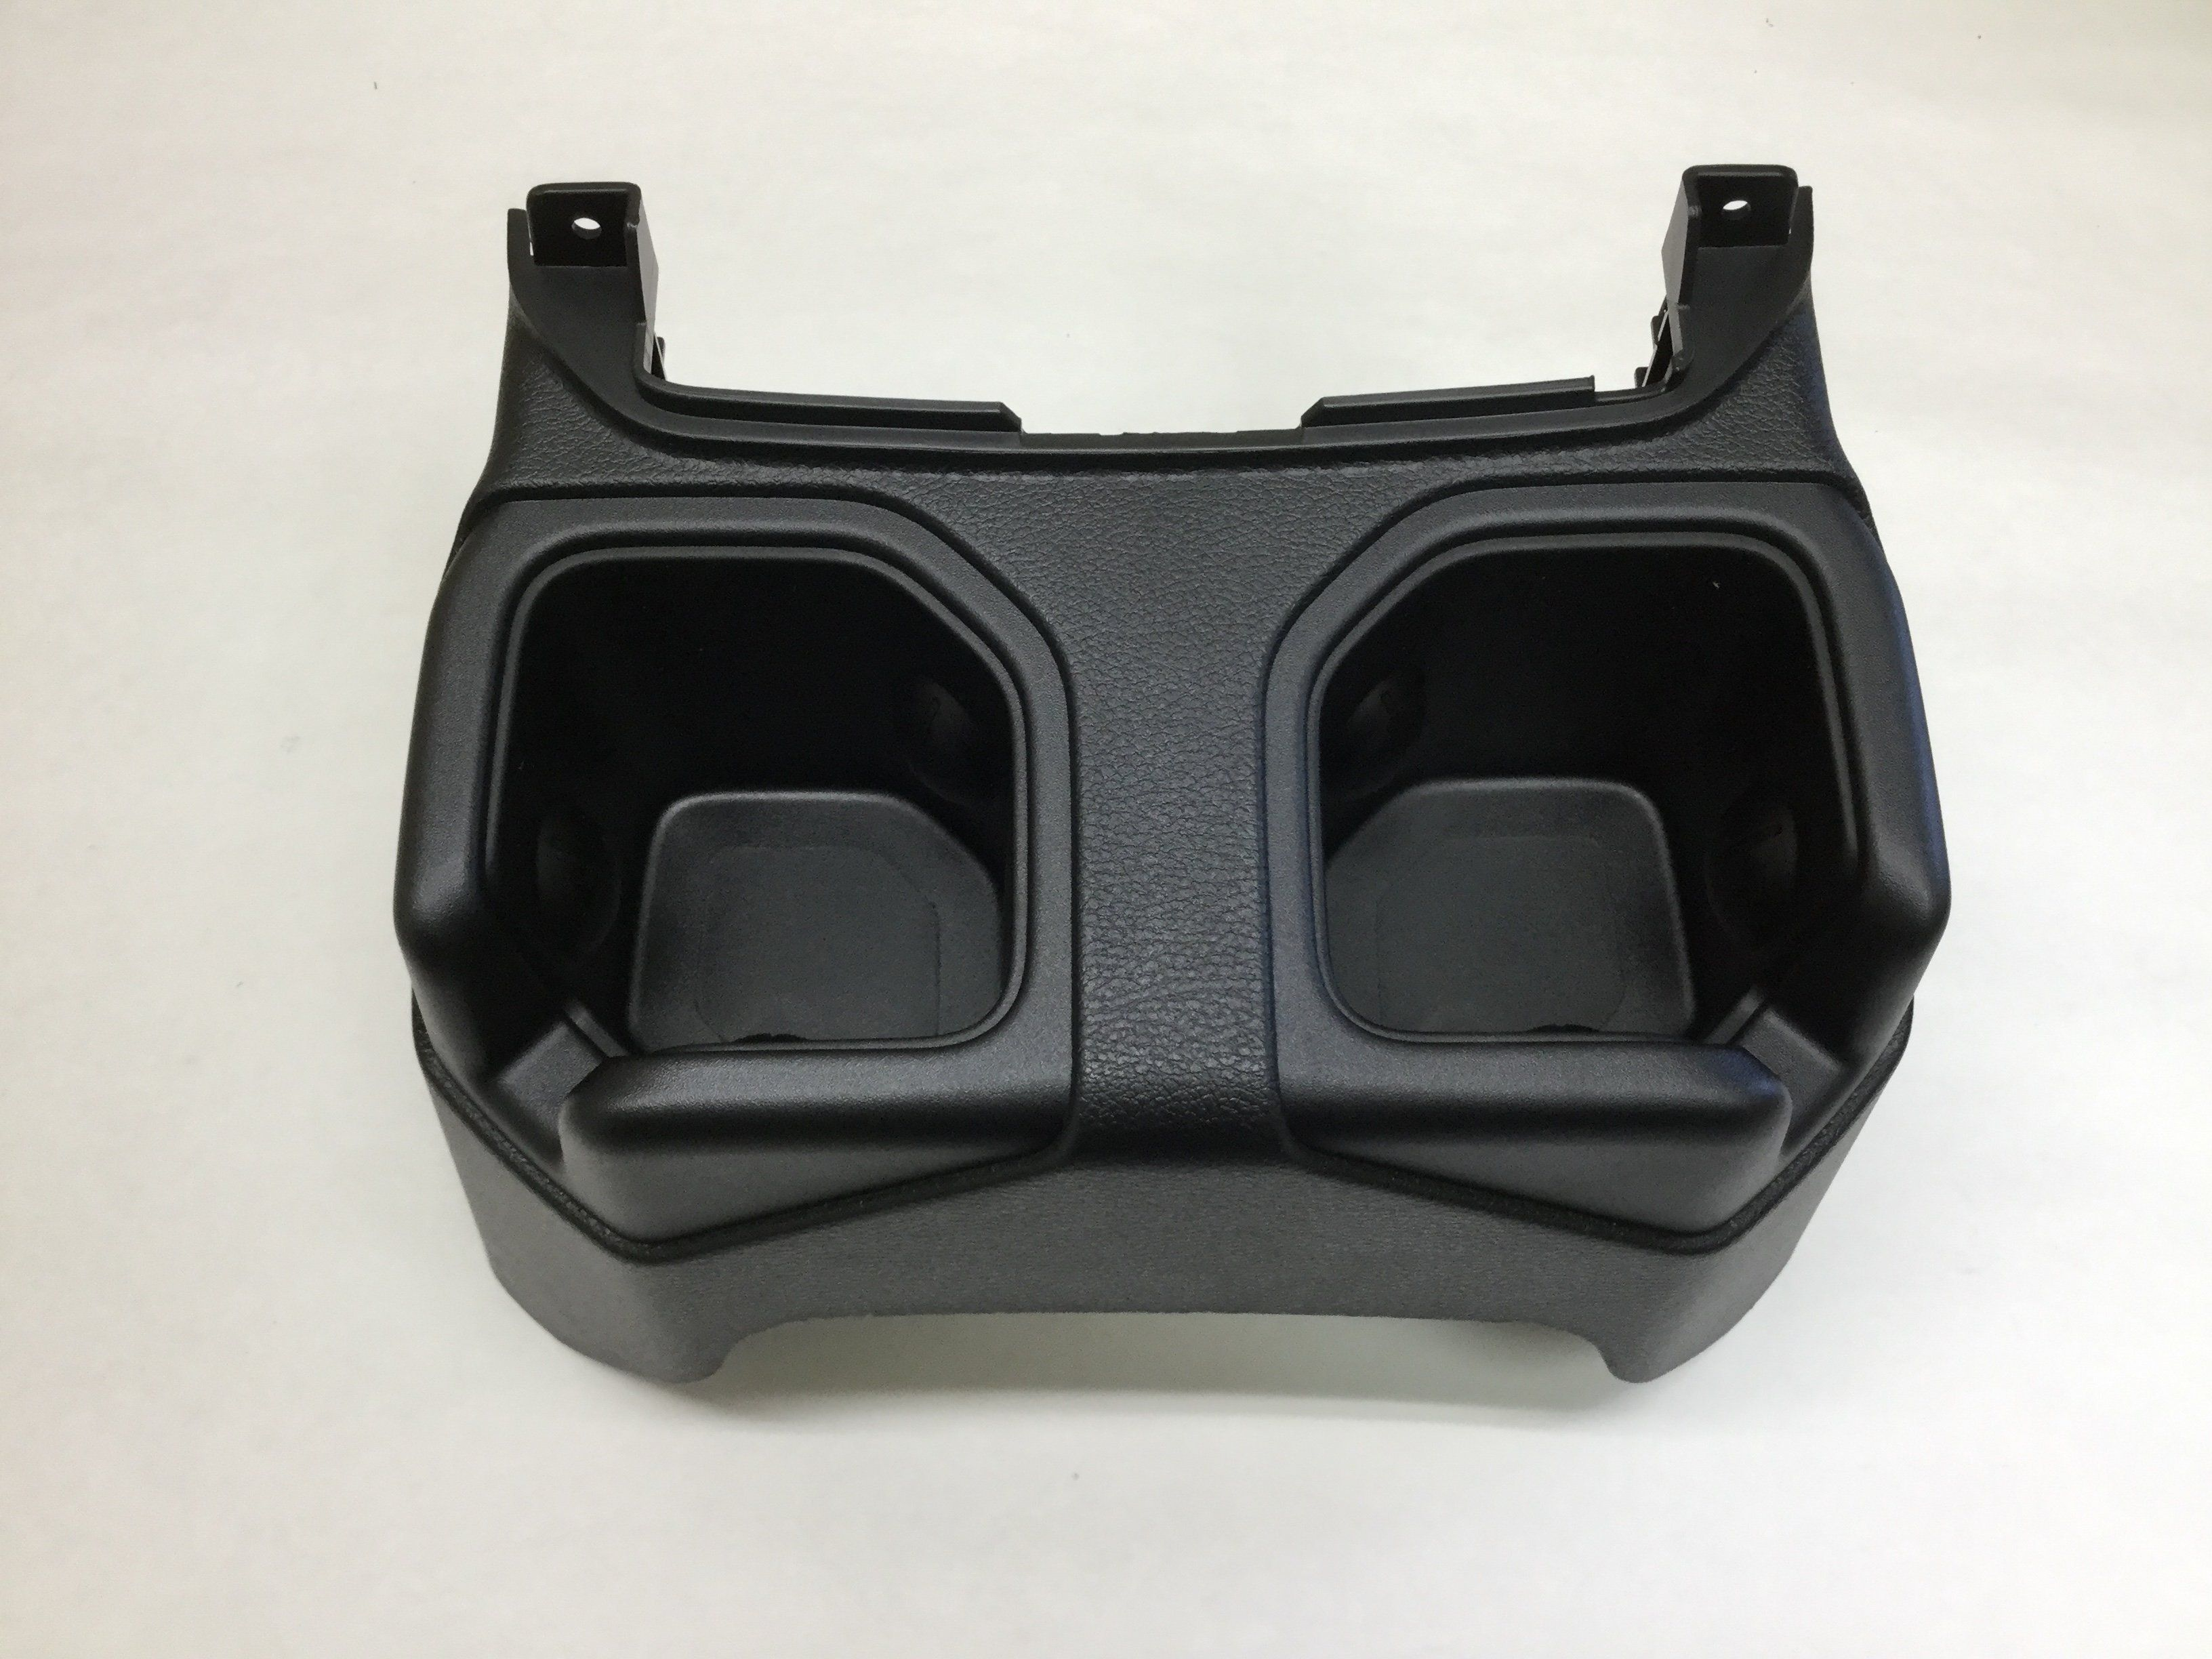 2018 2019 Jeep Wrangler Jl Rear Floor Console Cup Holder Genuine Oem New New Auto Parts Car Genuine Truck Jeep Wrangler Wrangler Jl Jeep